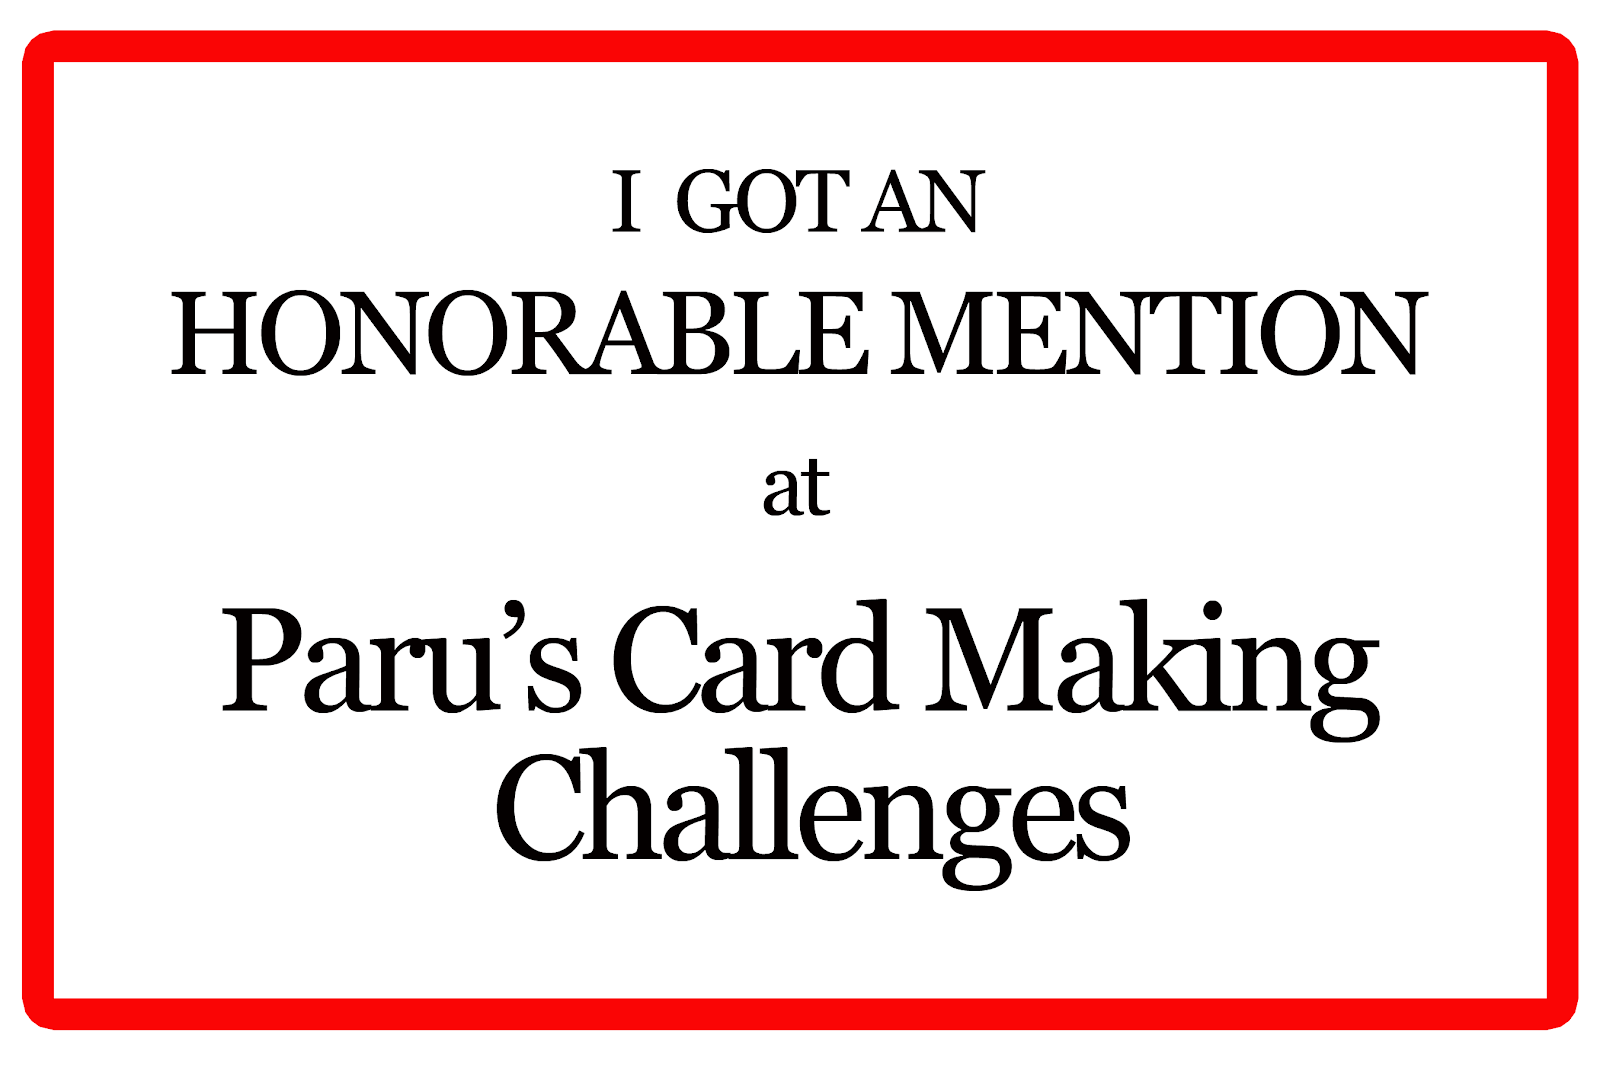 Honorable Mention at Paru's Card Making Challenges